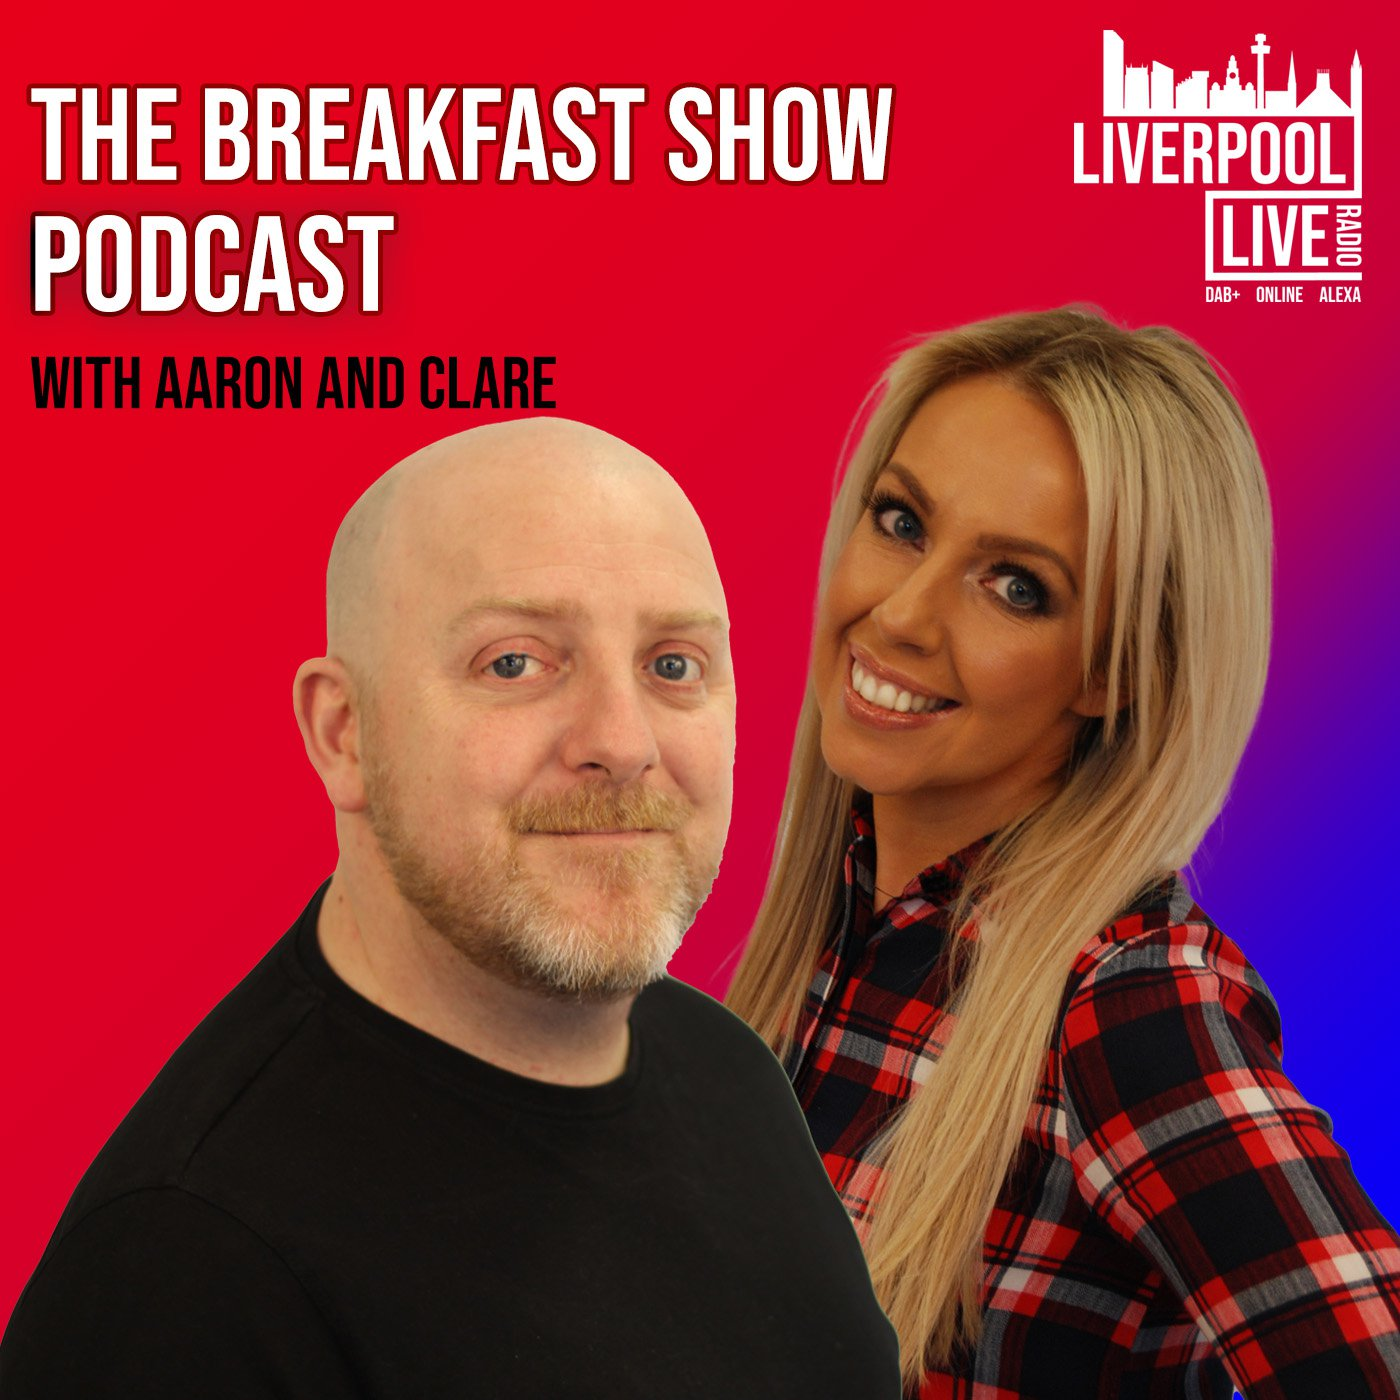 The Breakfast Show Podcast